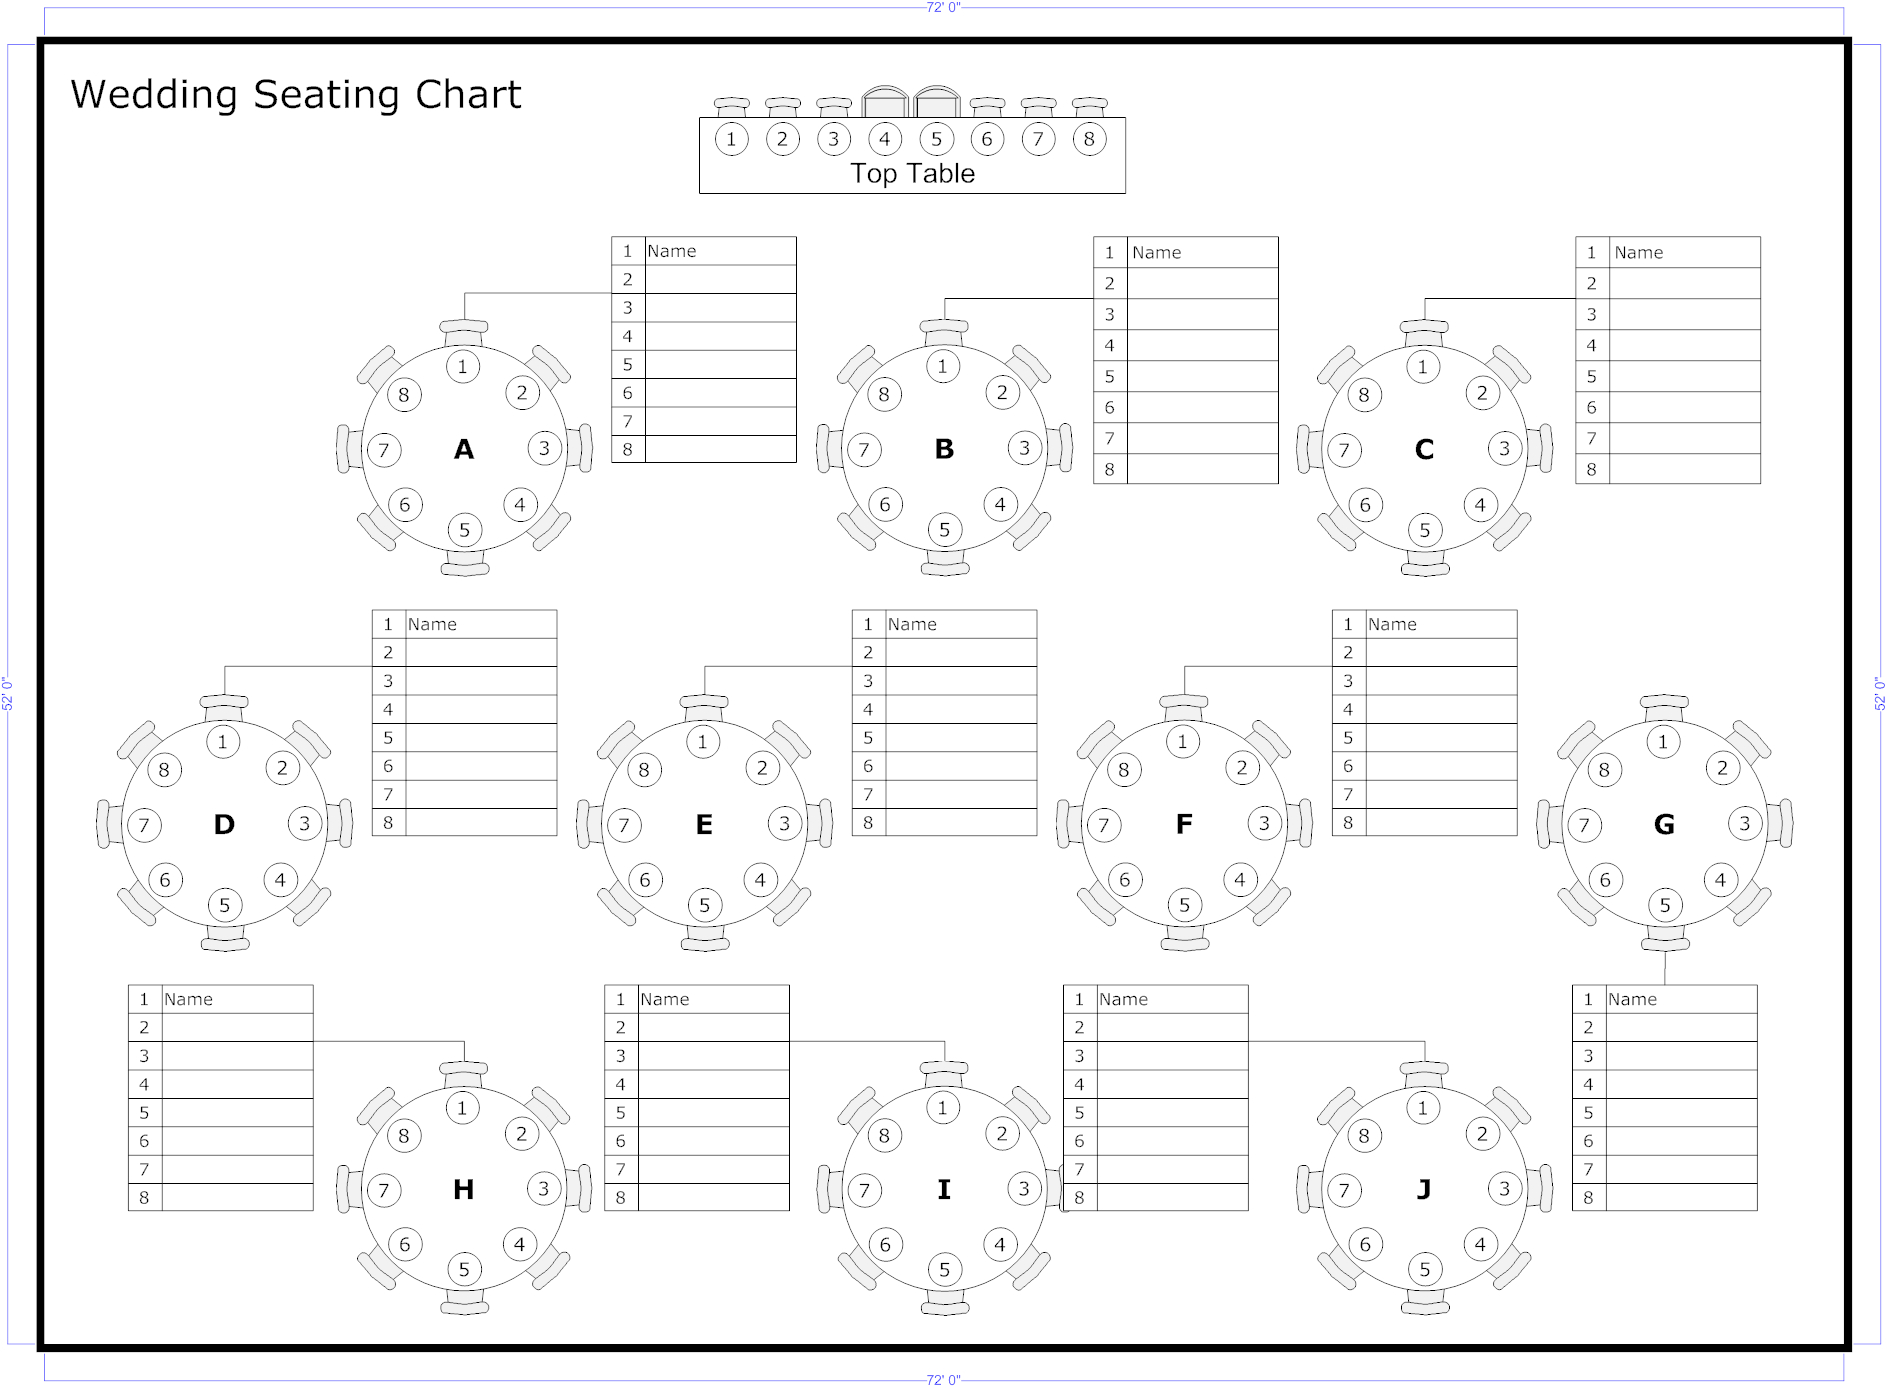 Tips To Seat Your Wedding Guests | Wedding Ideas | Seating Chart - Free Printable Wedding Seating Chart Template